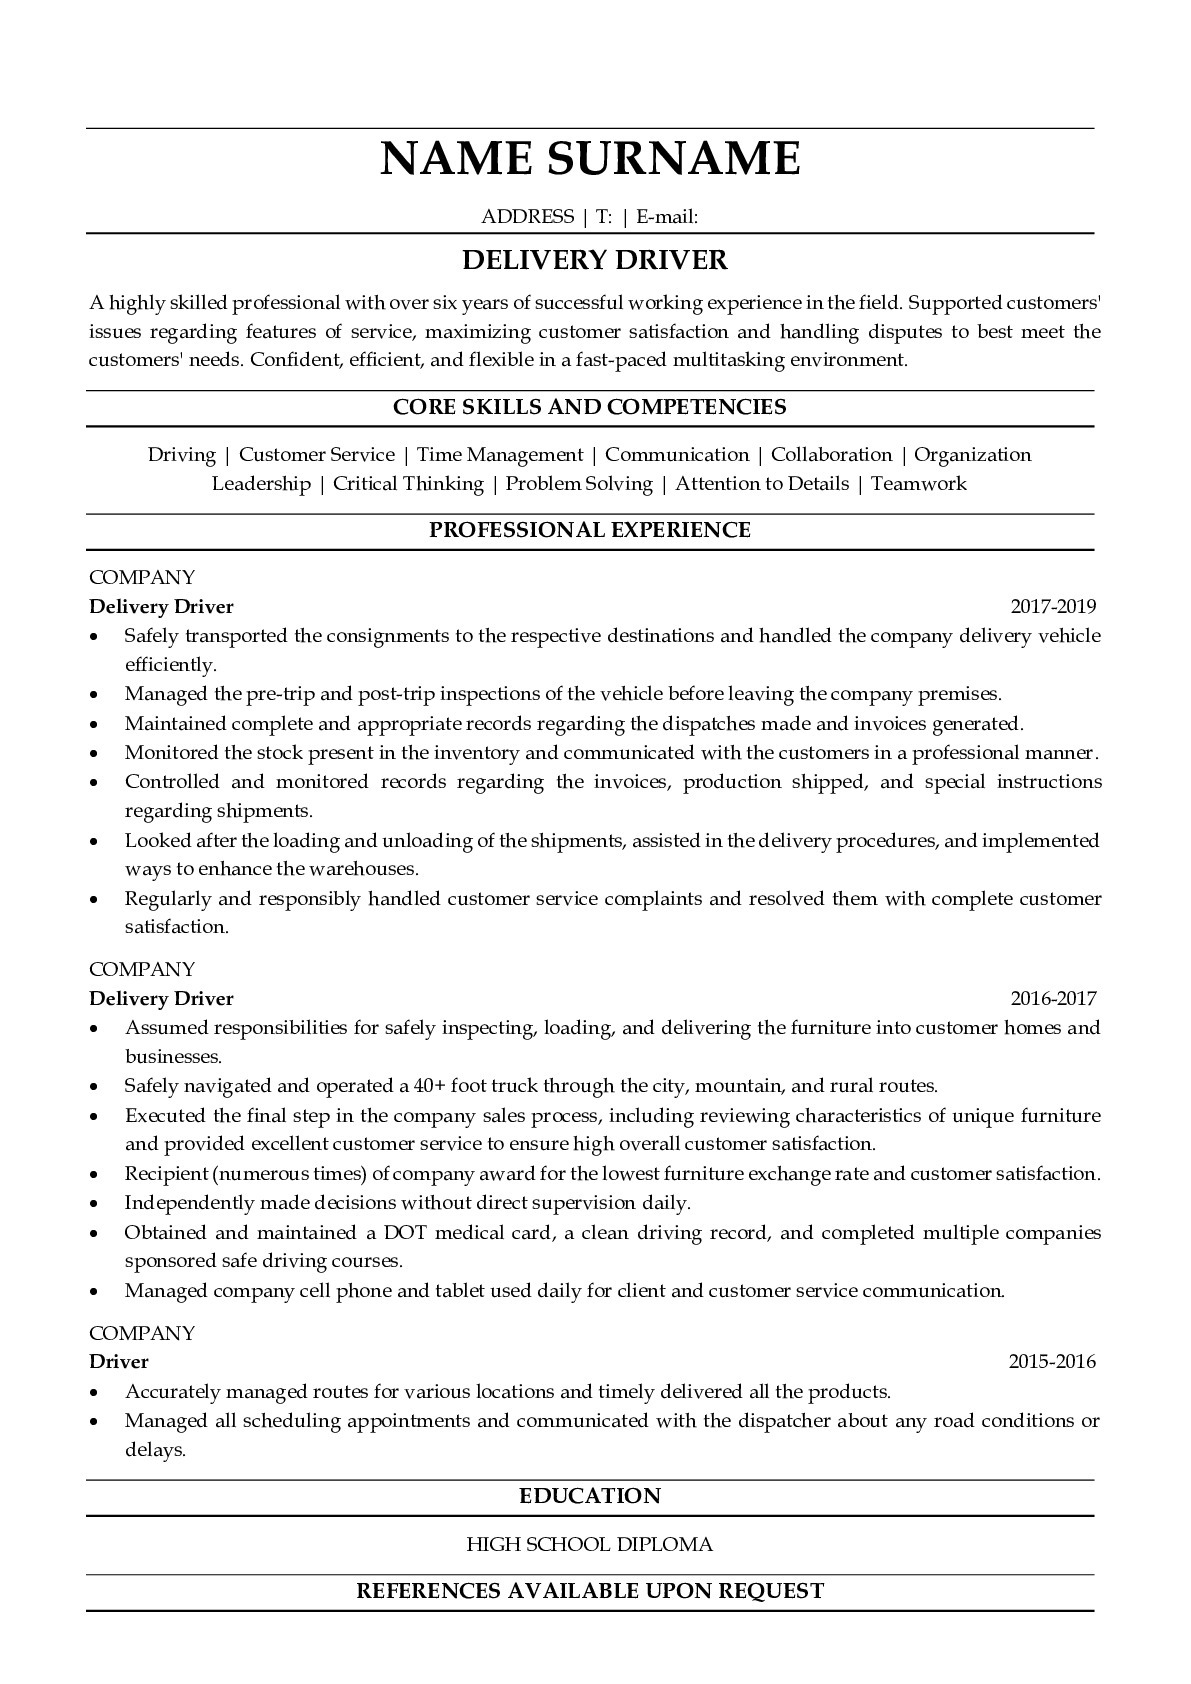 Resume Example for Delivery Driver